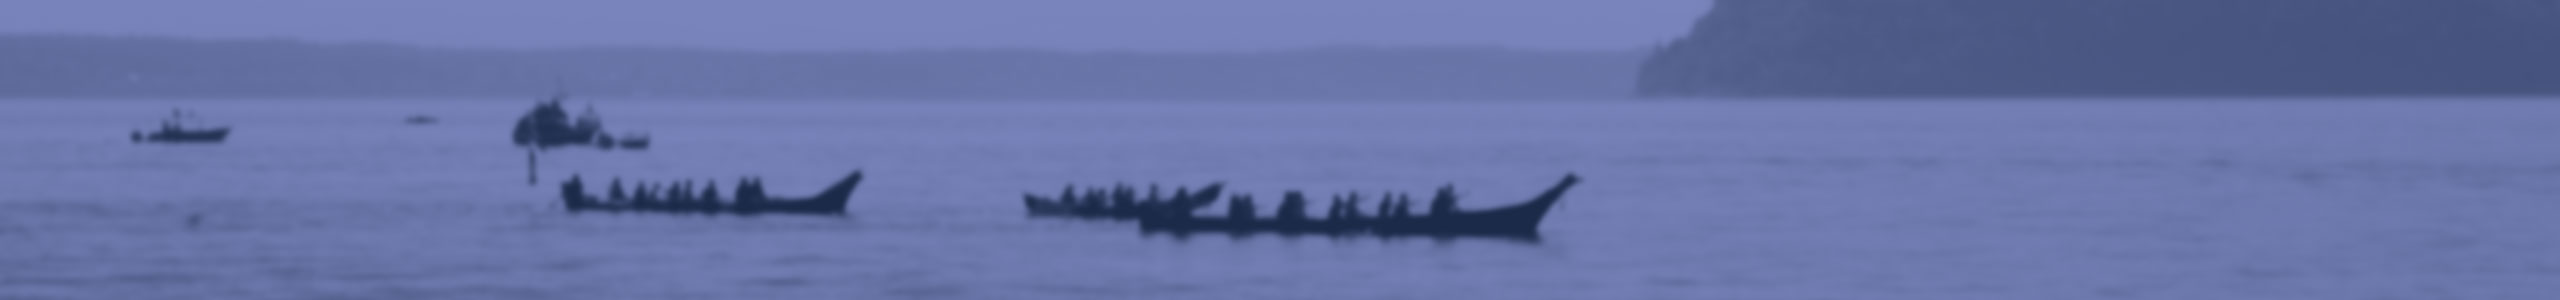 Image of bay with tribal canoes and citizens of Tulalip Tribes background header.